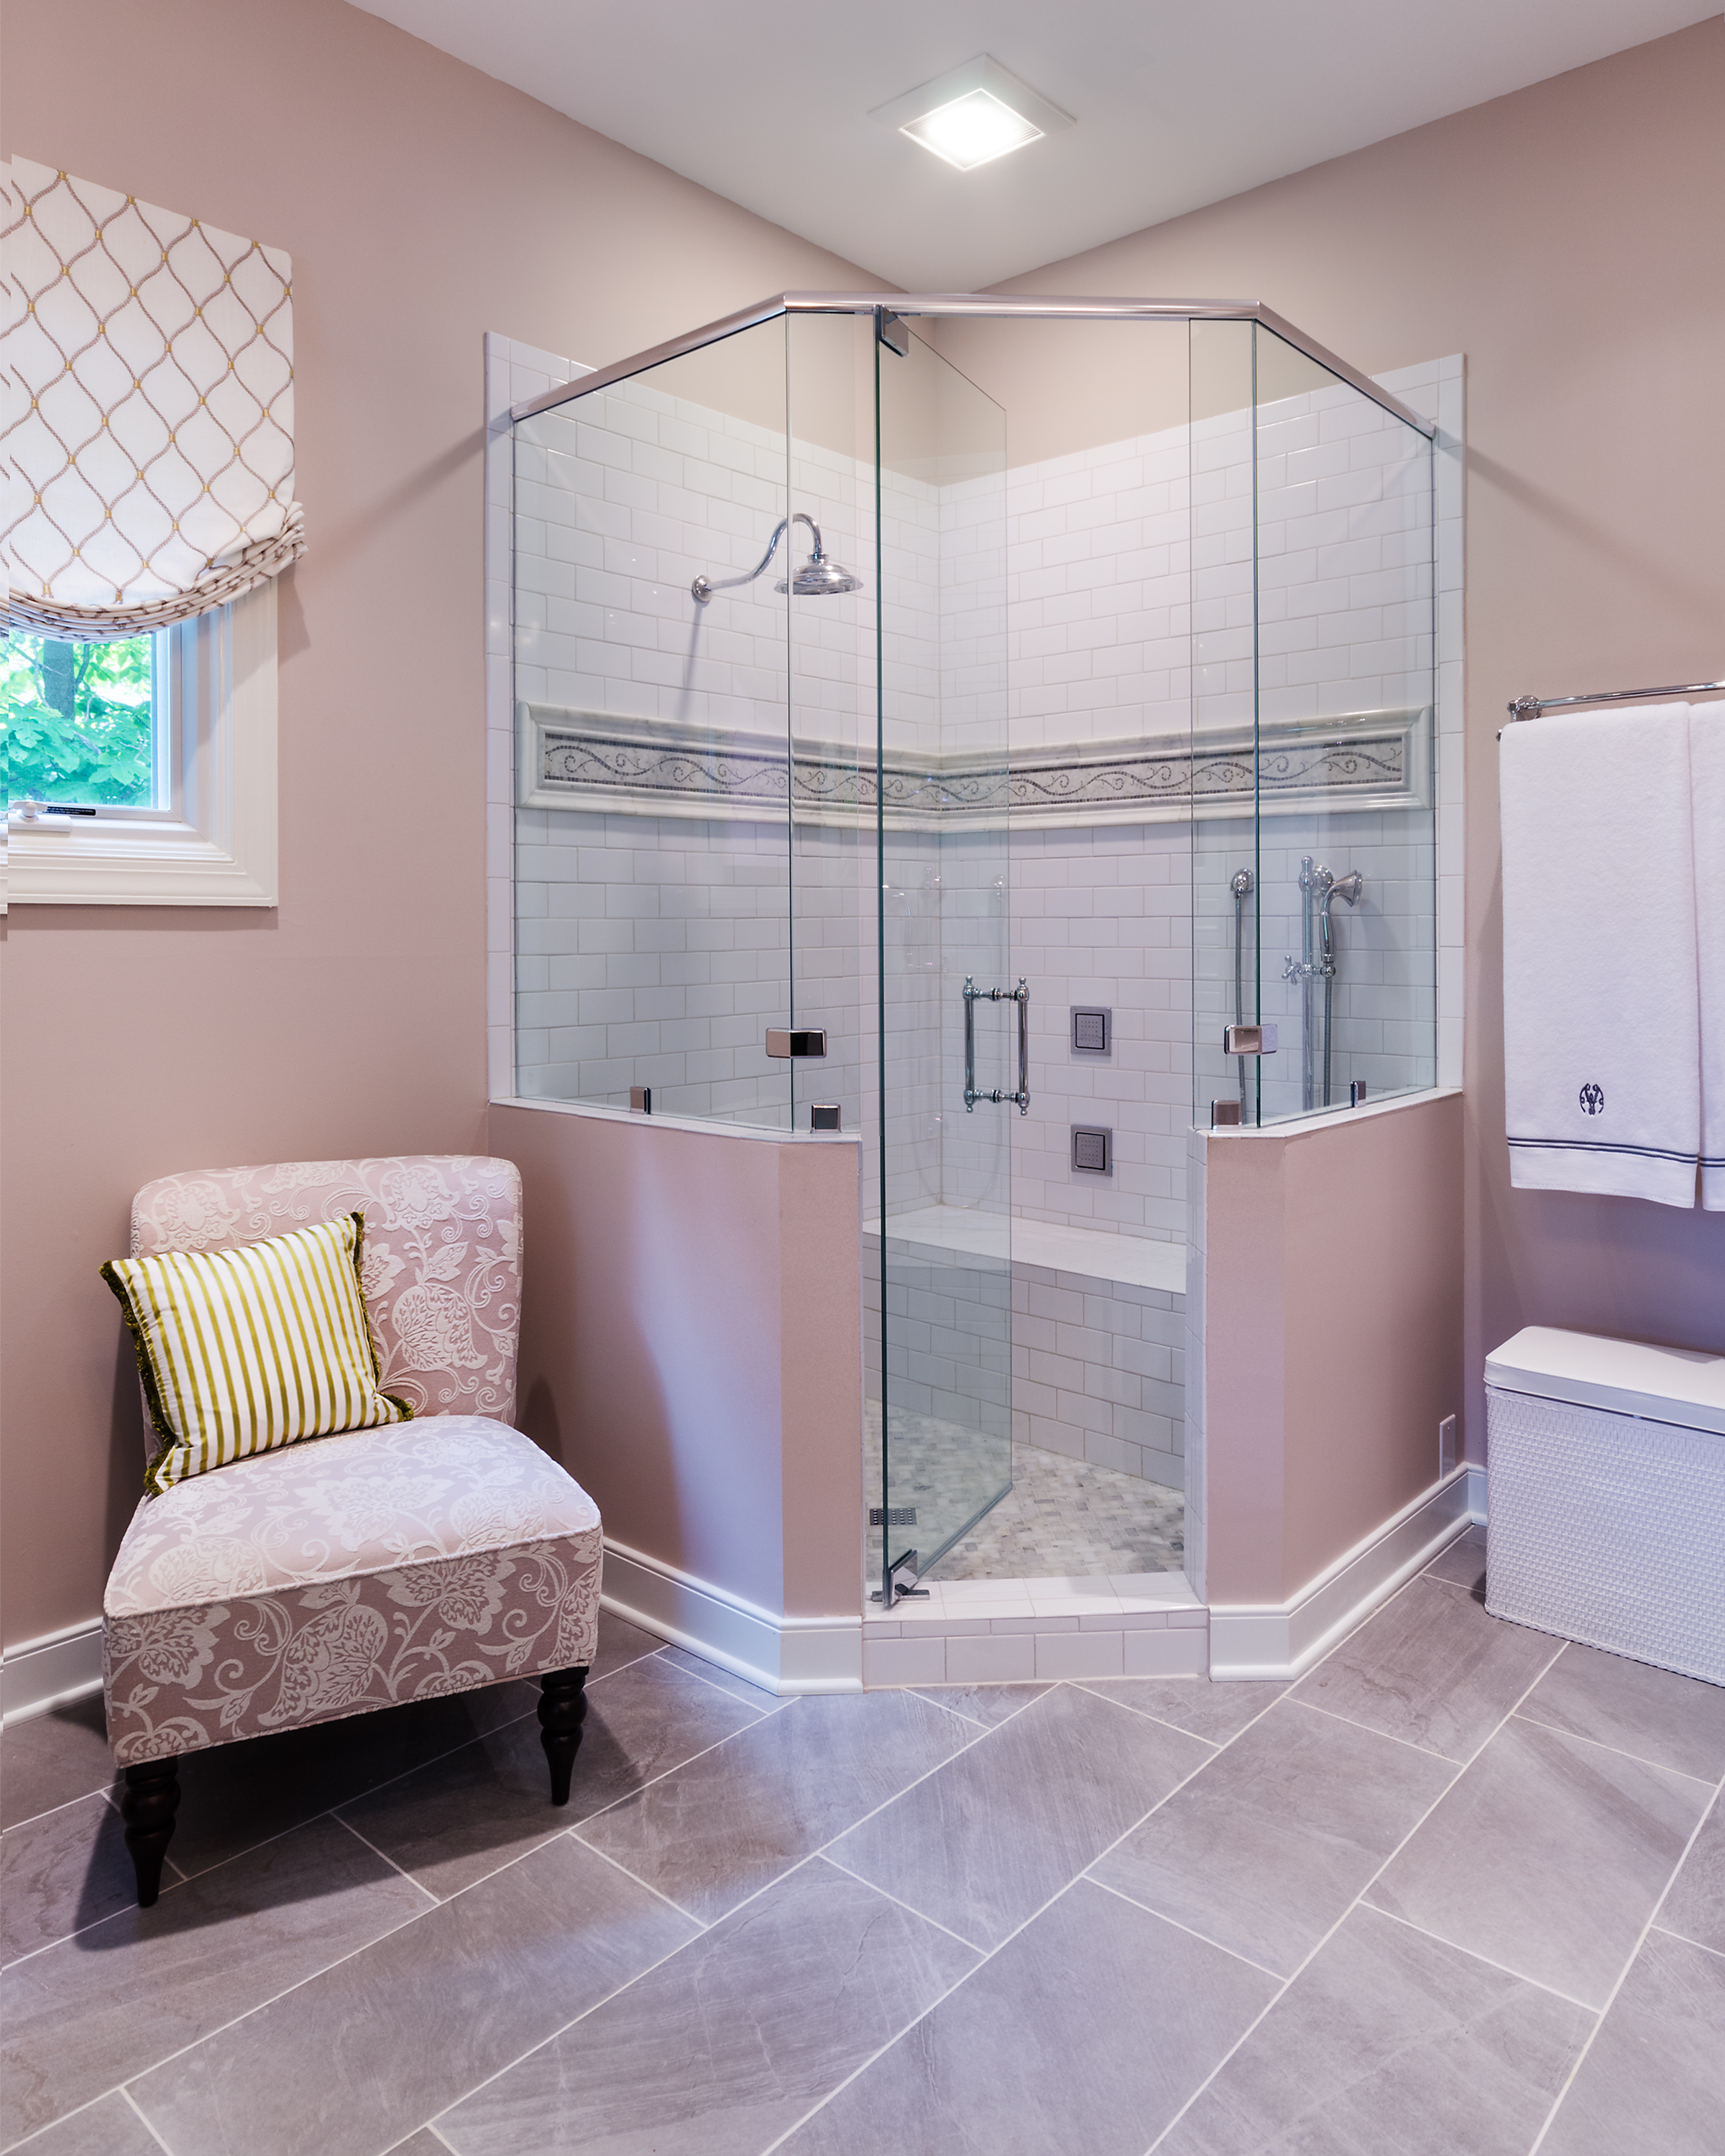 Custom-Kitchens-Wolenberg-Master-Bath-Shower-52214.jpg